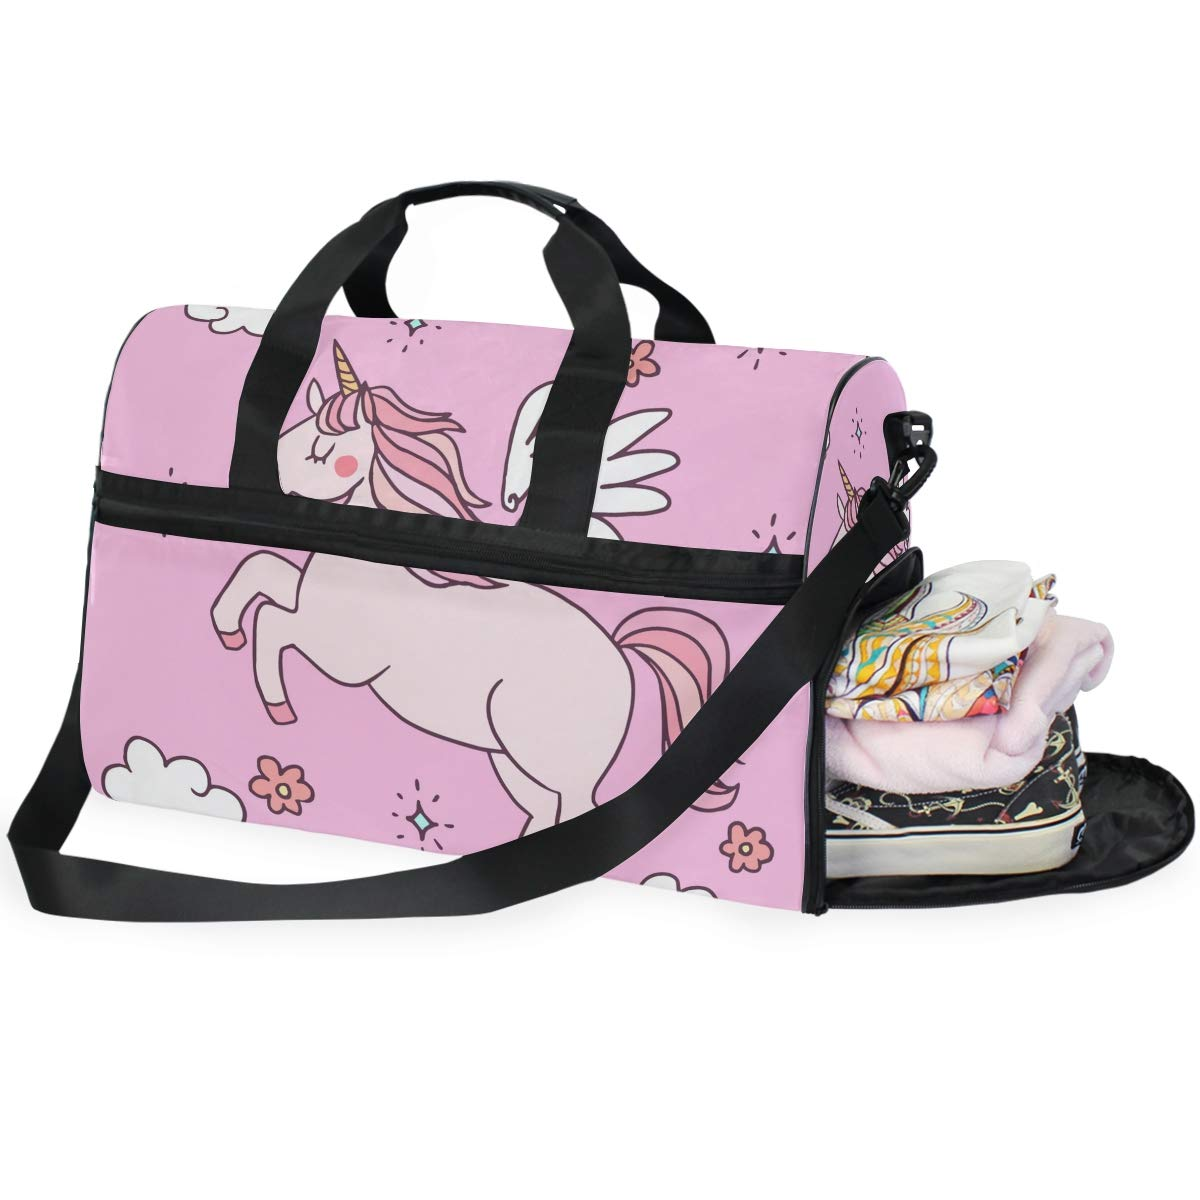 Vacation Travel Duffel Bag Pink Unicorn Waterproof Lightweight Luggage bag for Sports Gym